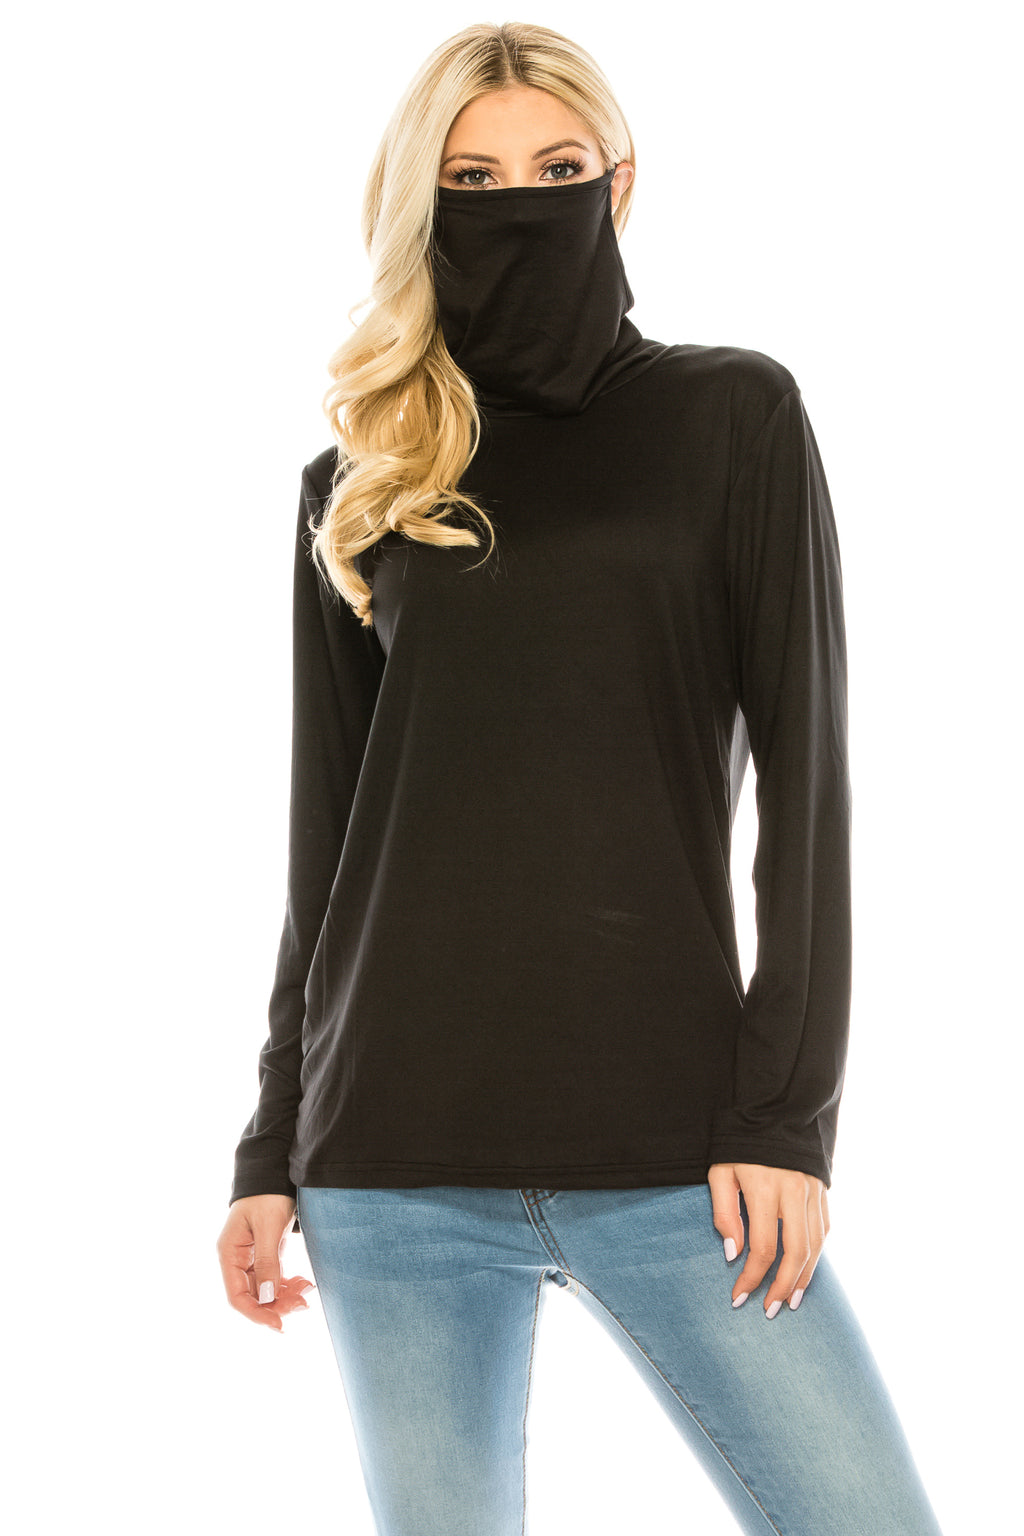 Haute Edition Cowl Neck Tee with Built-In Mask